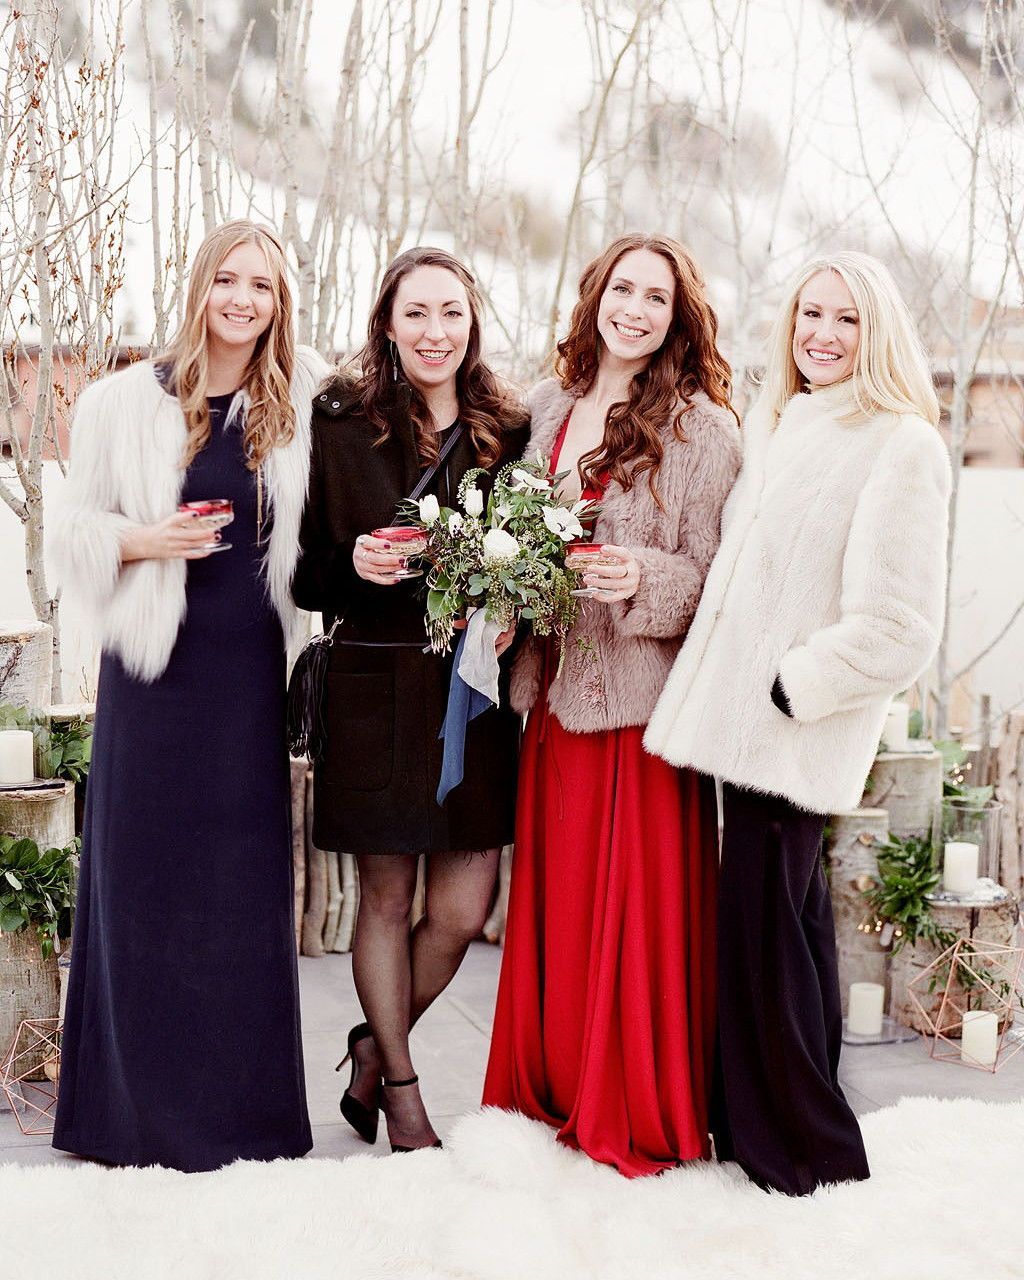 20 Seasonal Outfit Ideas For Winter Wedding Guests Winter Wedding Outfits Winter Wedding Attire Wedding Guest Outfit Winter